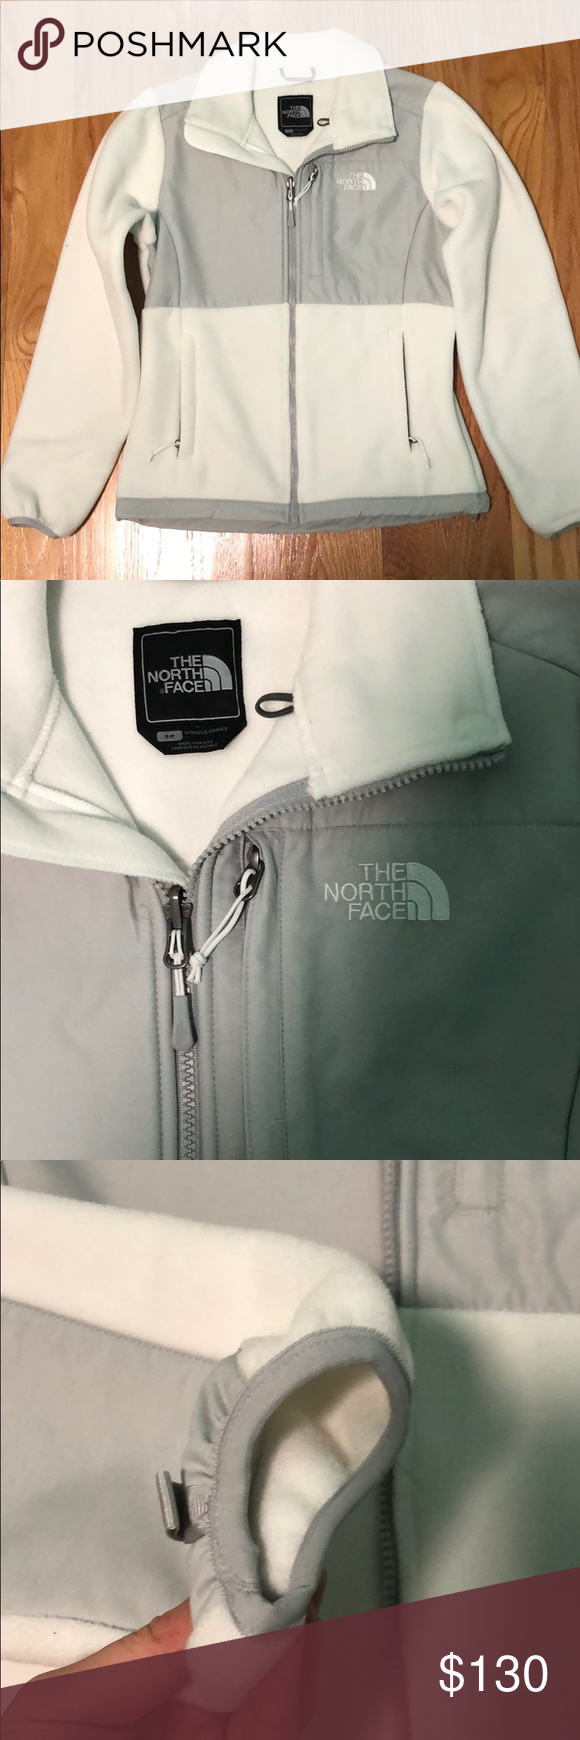 Brand New North Face Jacket North Face Jacket The North Face Clothes Design [ 1740 x 580 Pixel ]